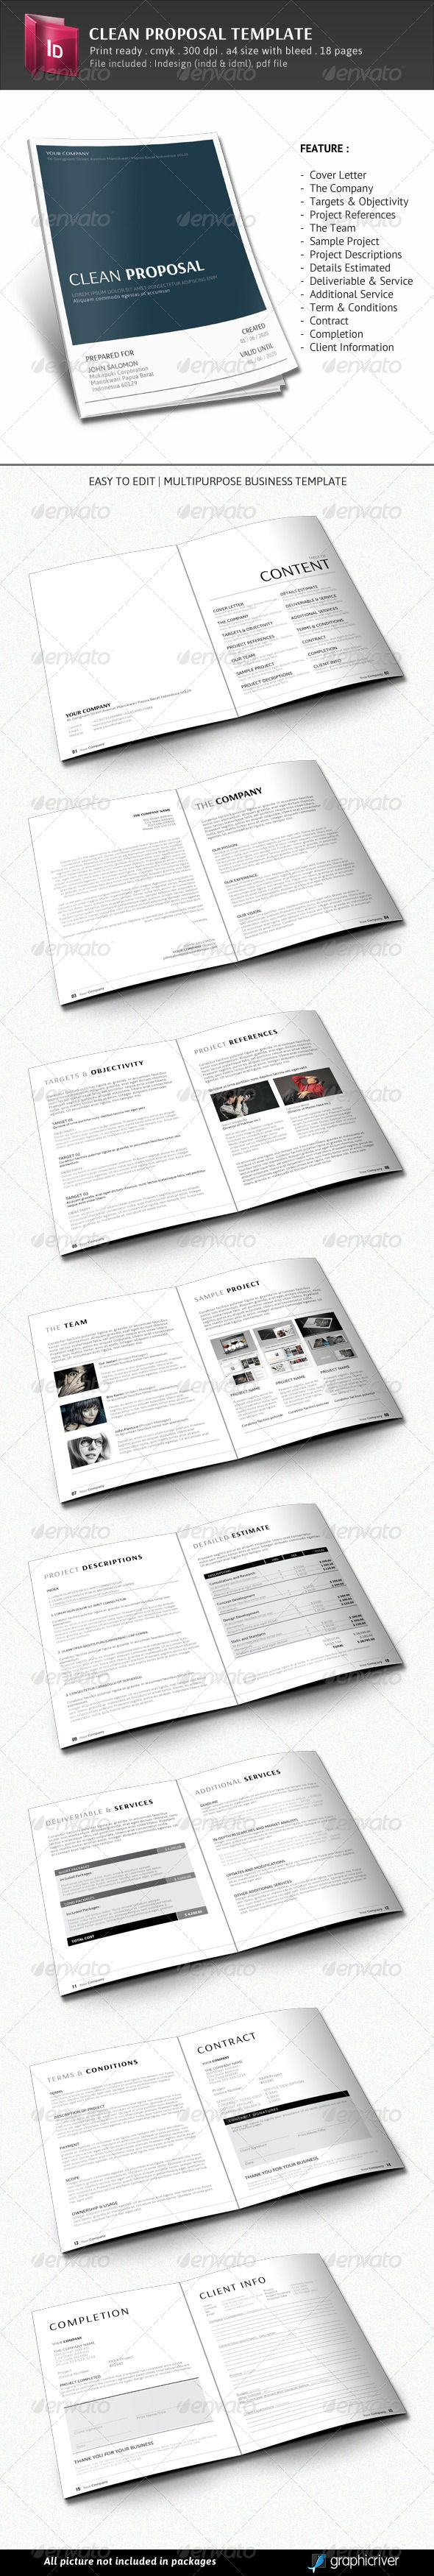 Commercial Proposal Format Mesmerizing 226 Best Proposal & Invoice Templates Images On Pinterest